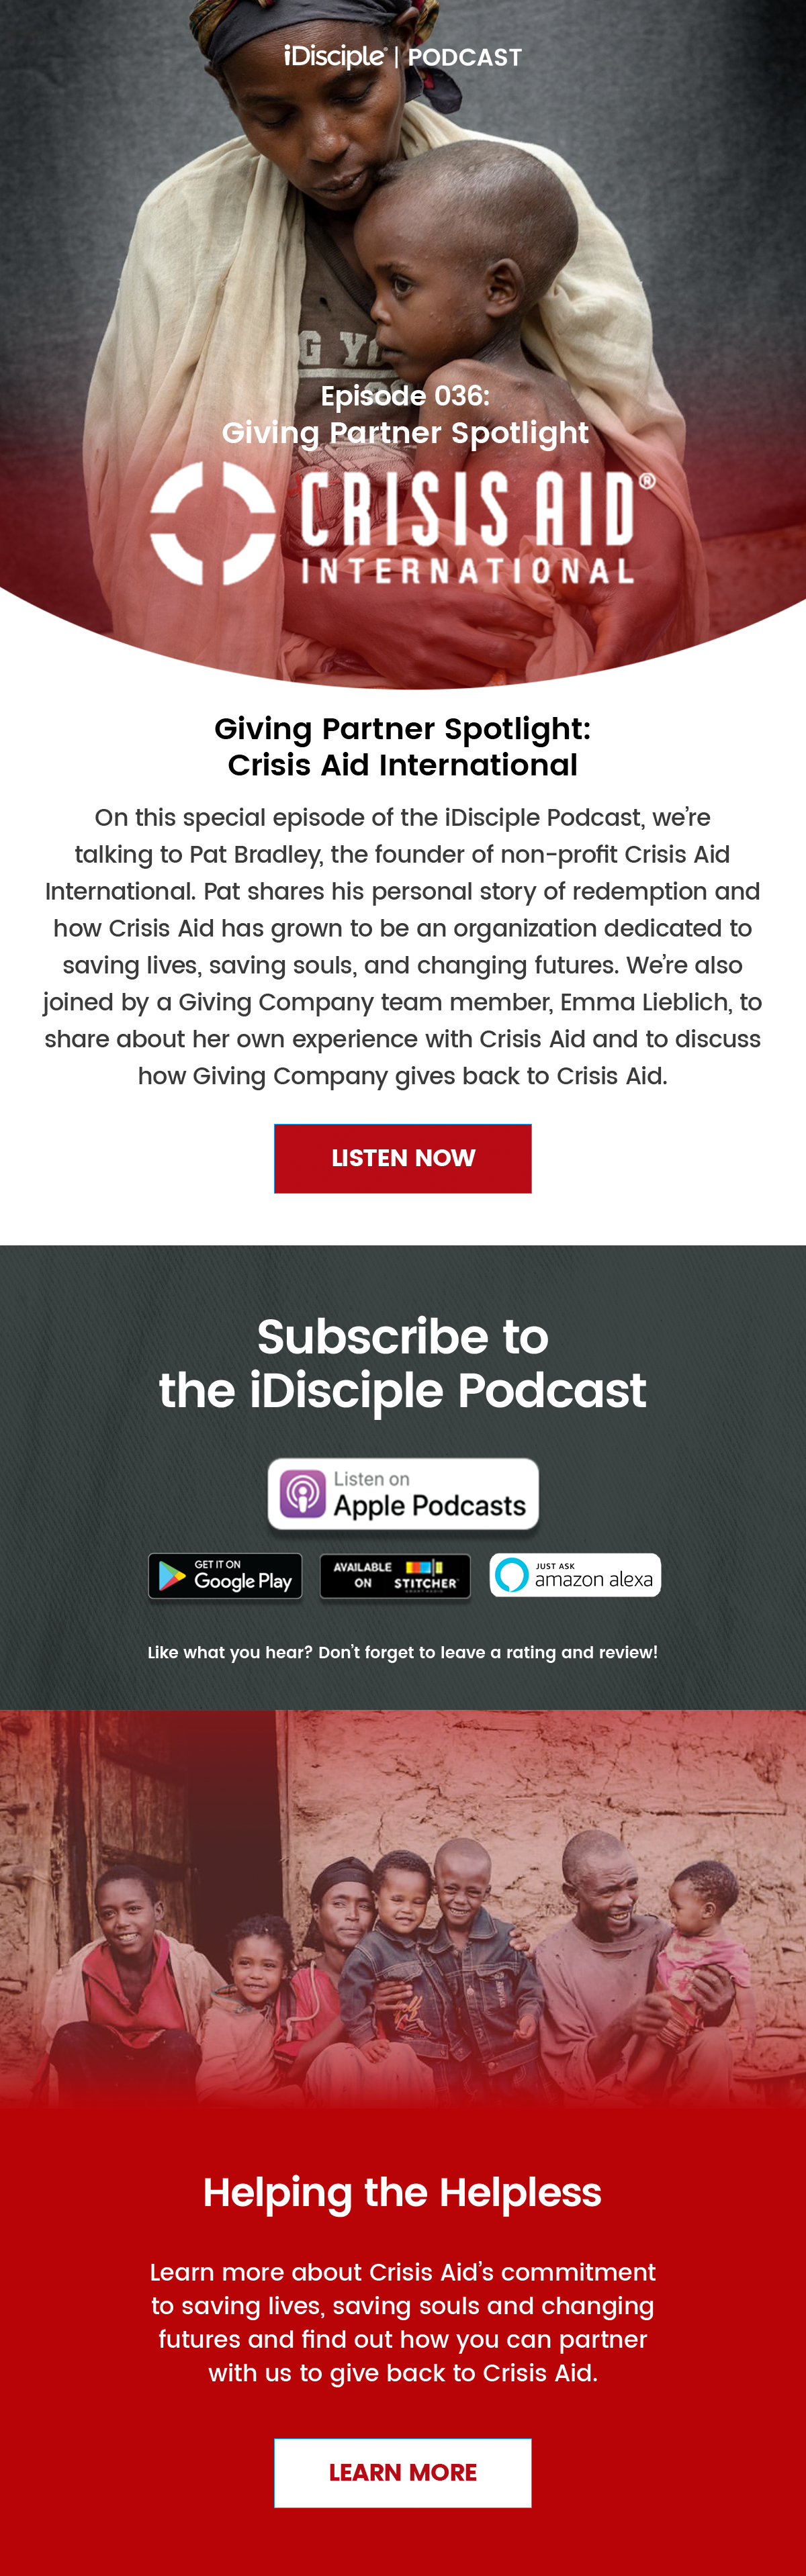 crisisaid - podcast - email.png